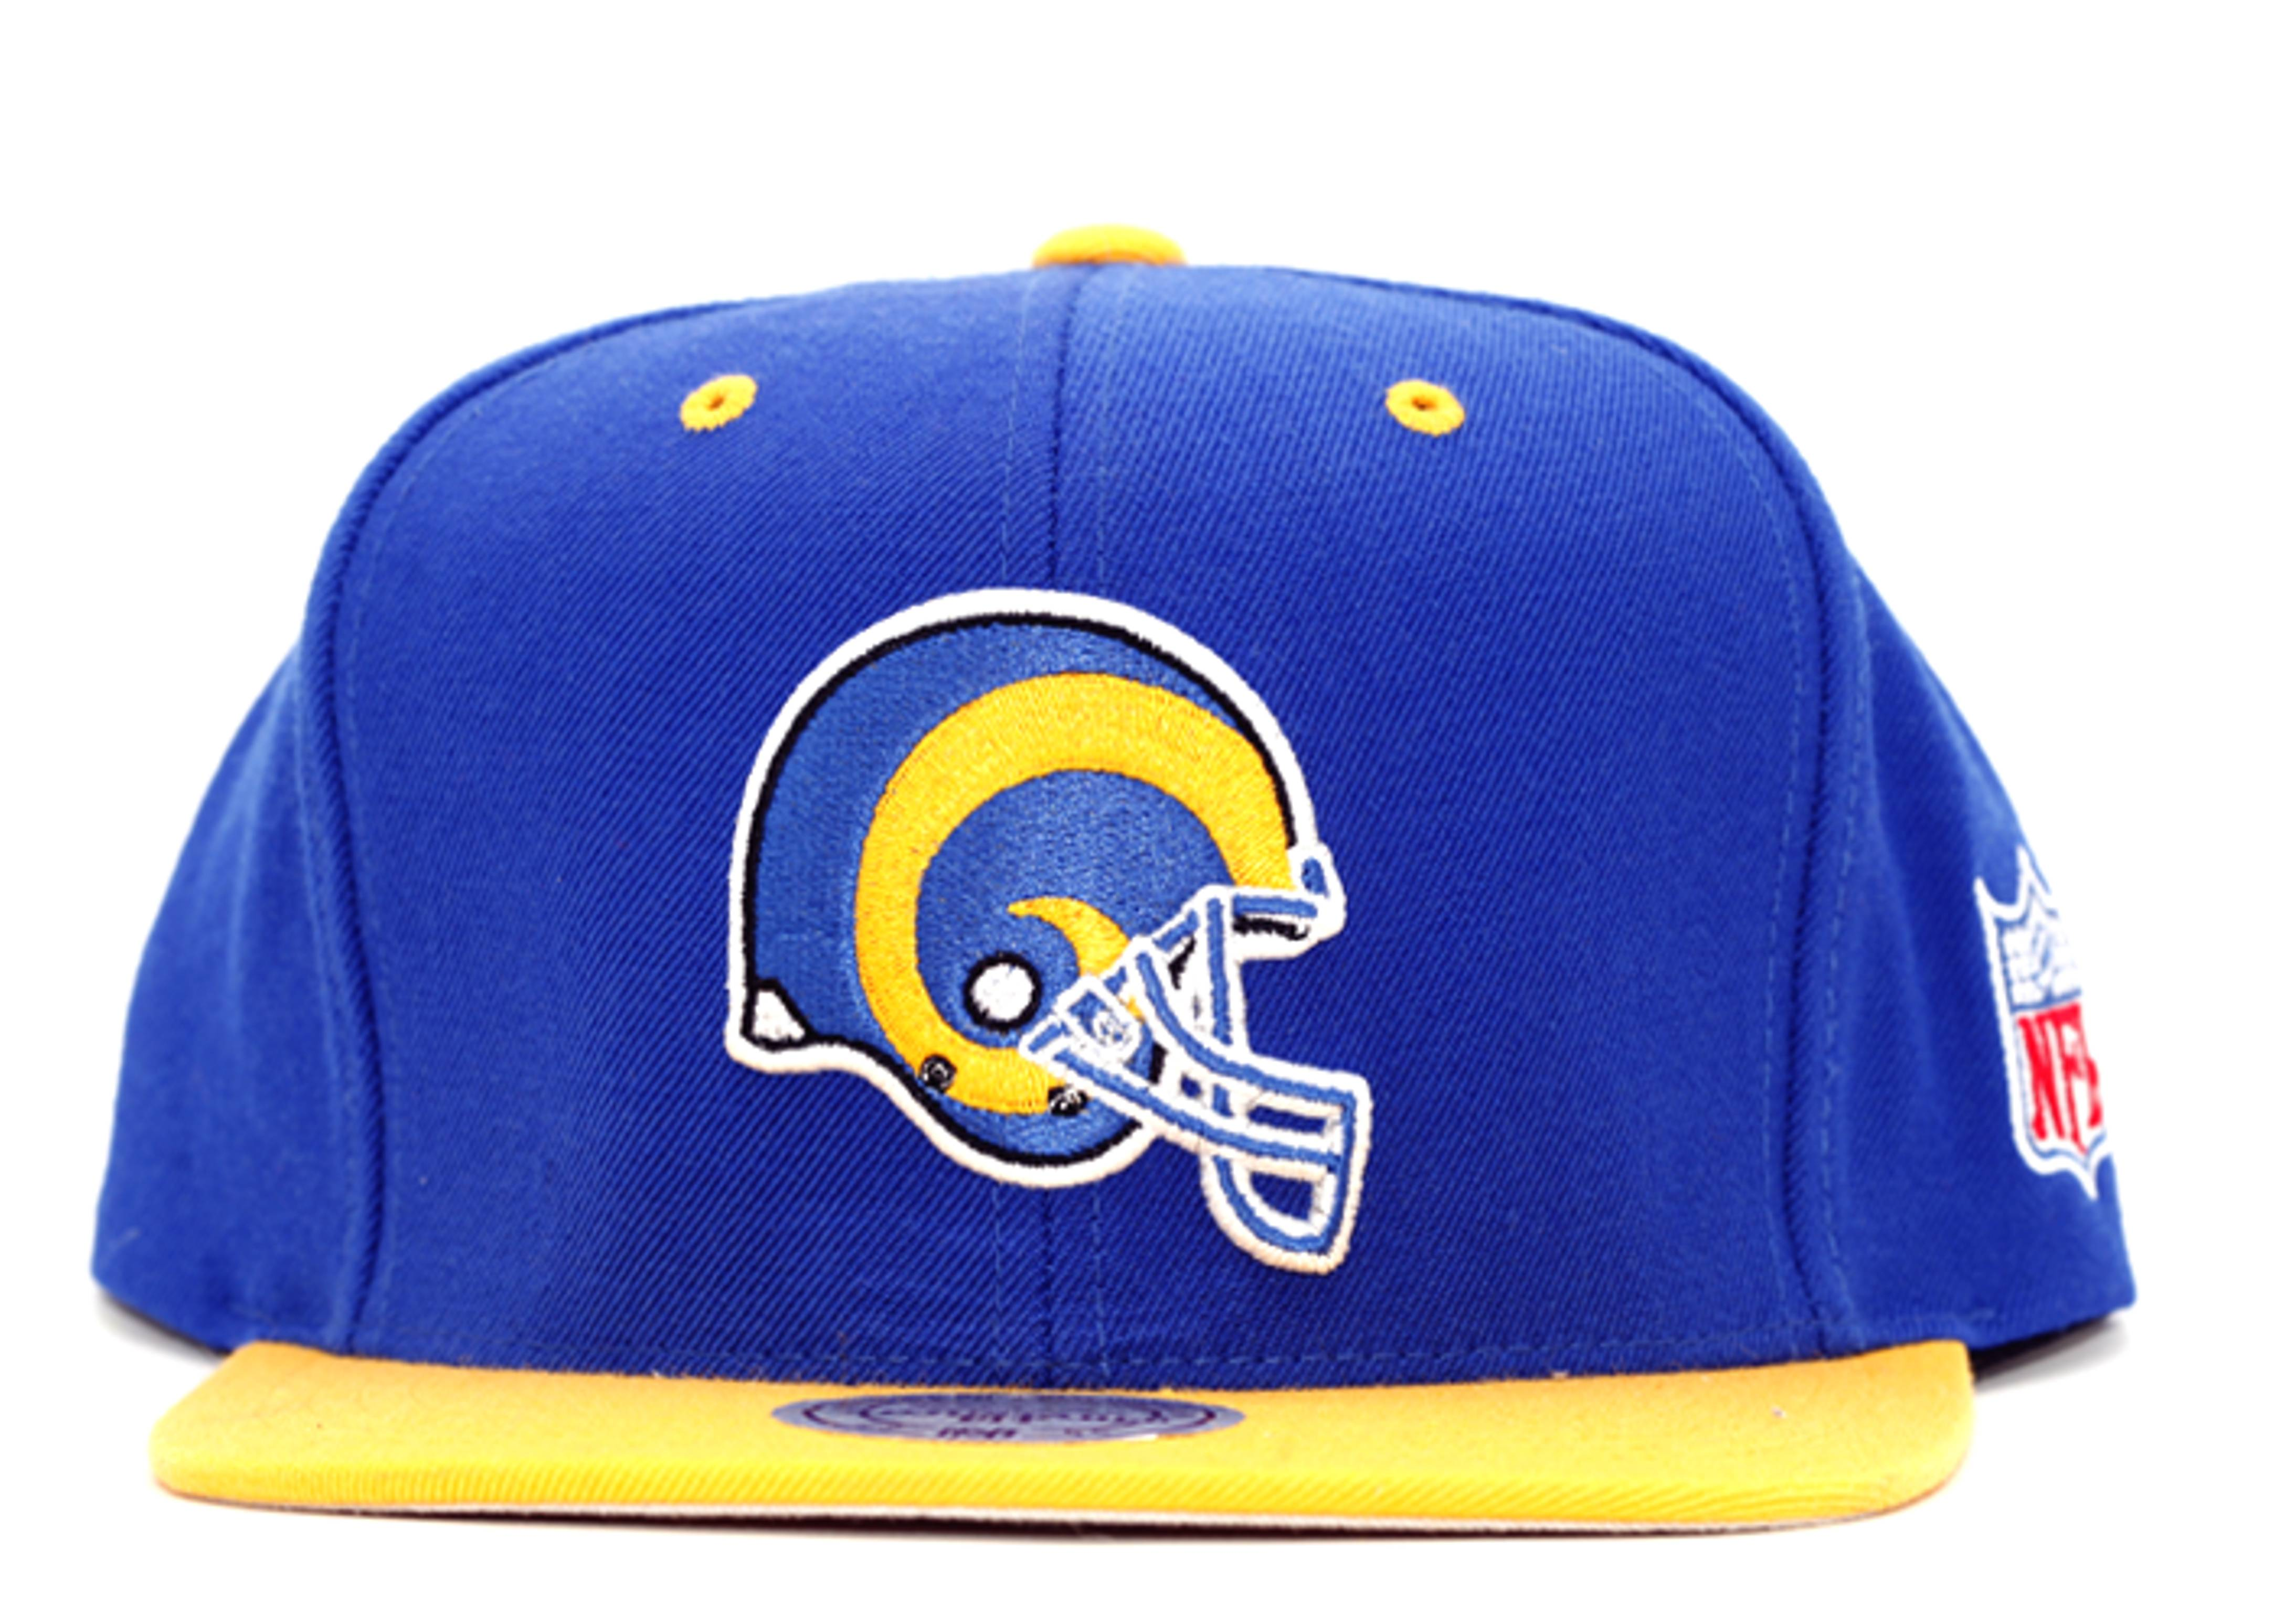 los angeles rams snap-back